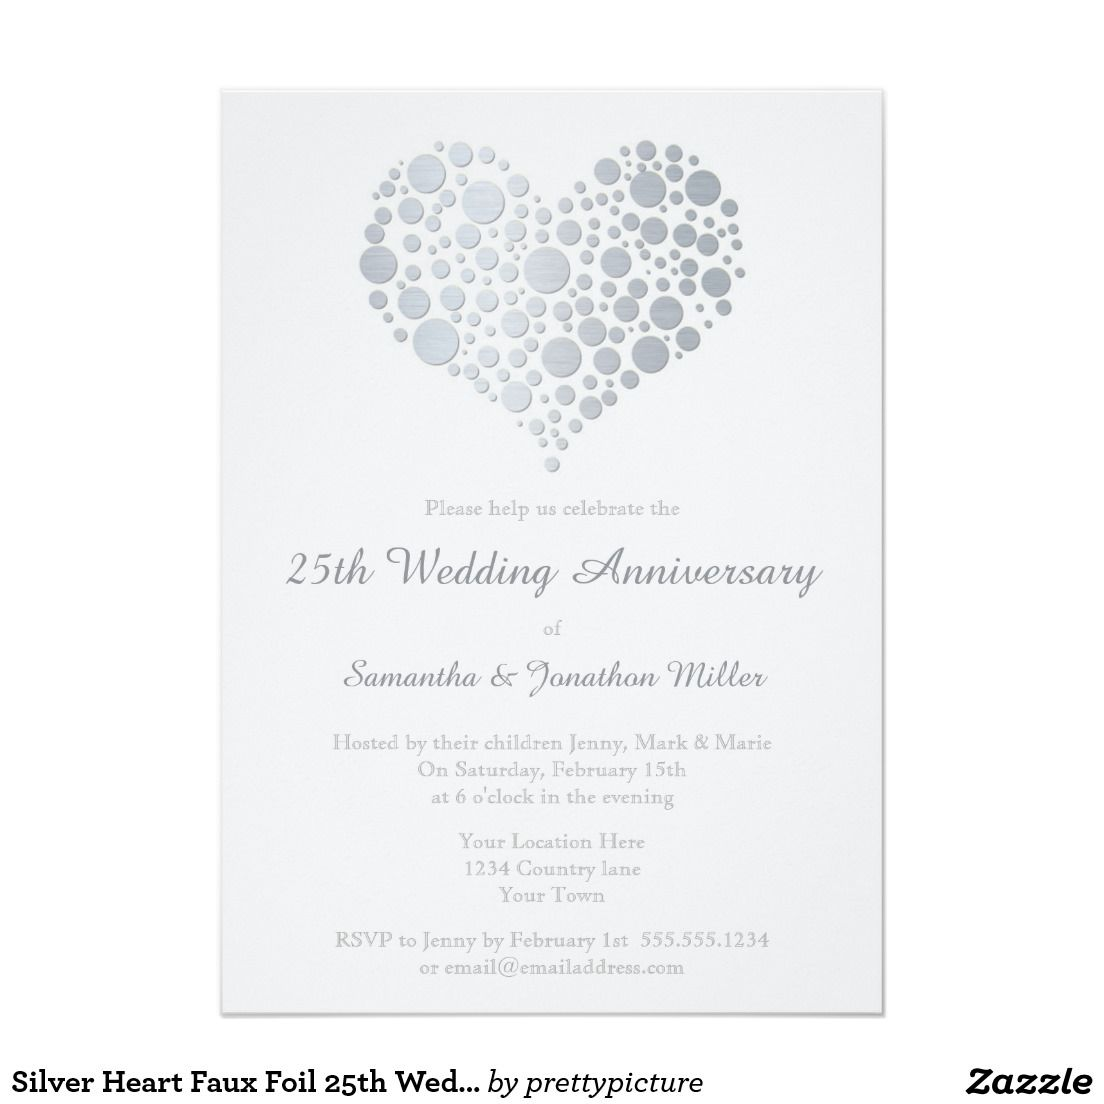 Silver Heart Faux Foil 25th Wedding Anniversary Card | 25 wedding ...